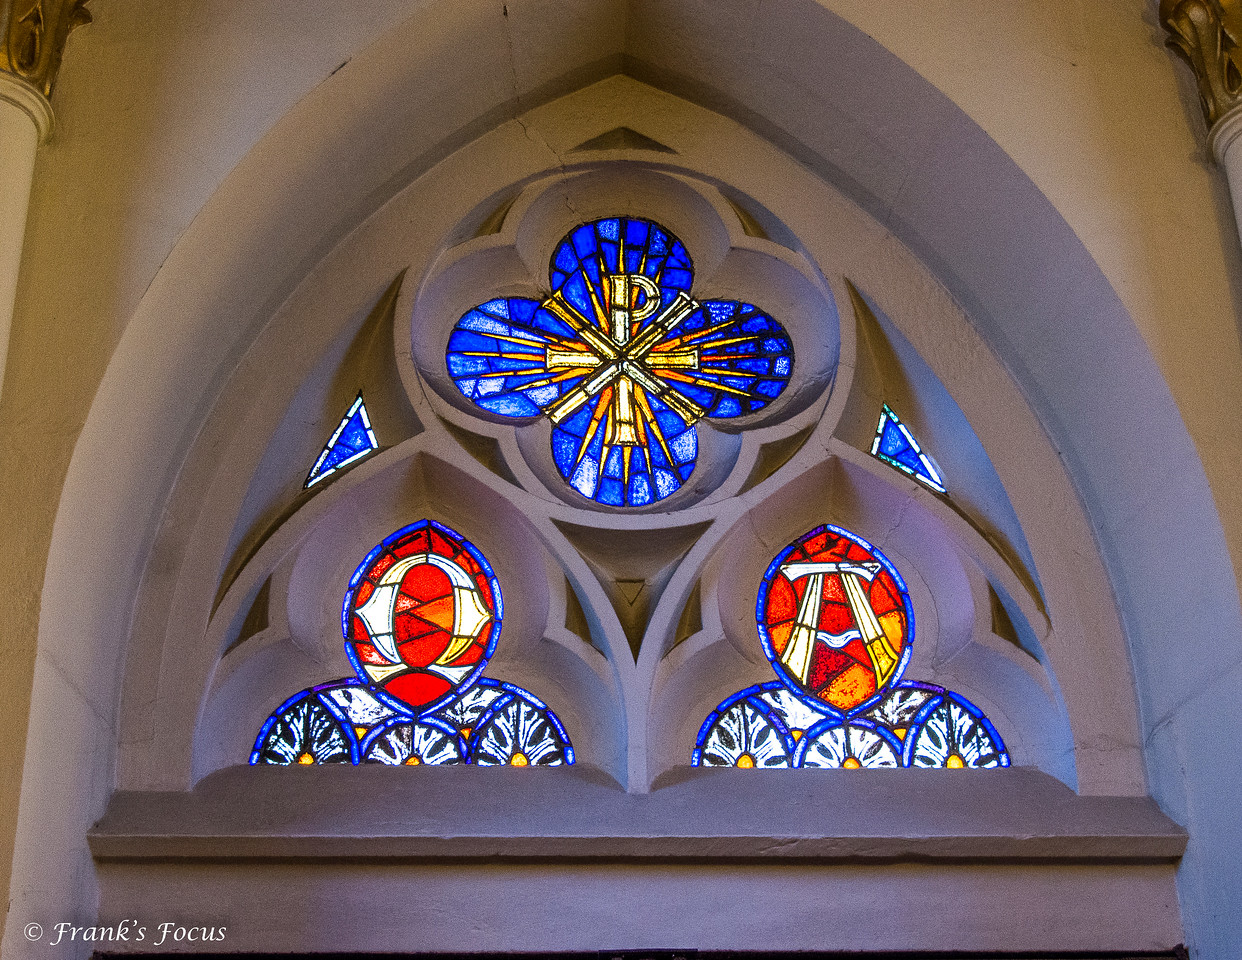 May 9, 2018 - Stained Glass